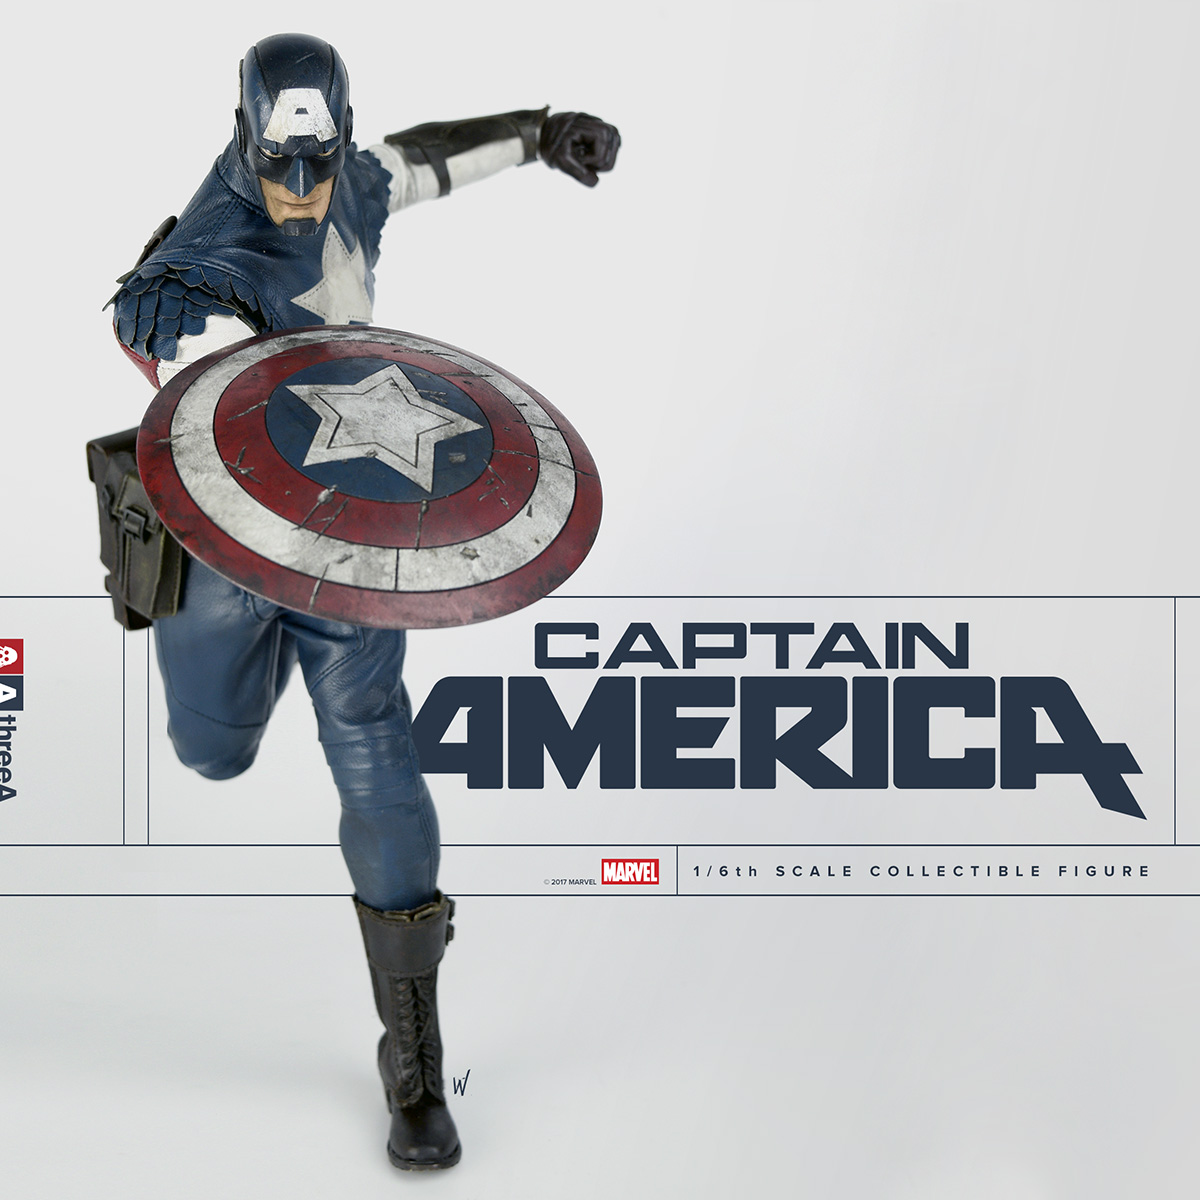 3A_Marvel_CaptainAmerica_Square_Ad_004brev.jpg